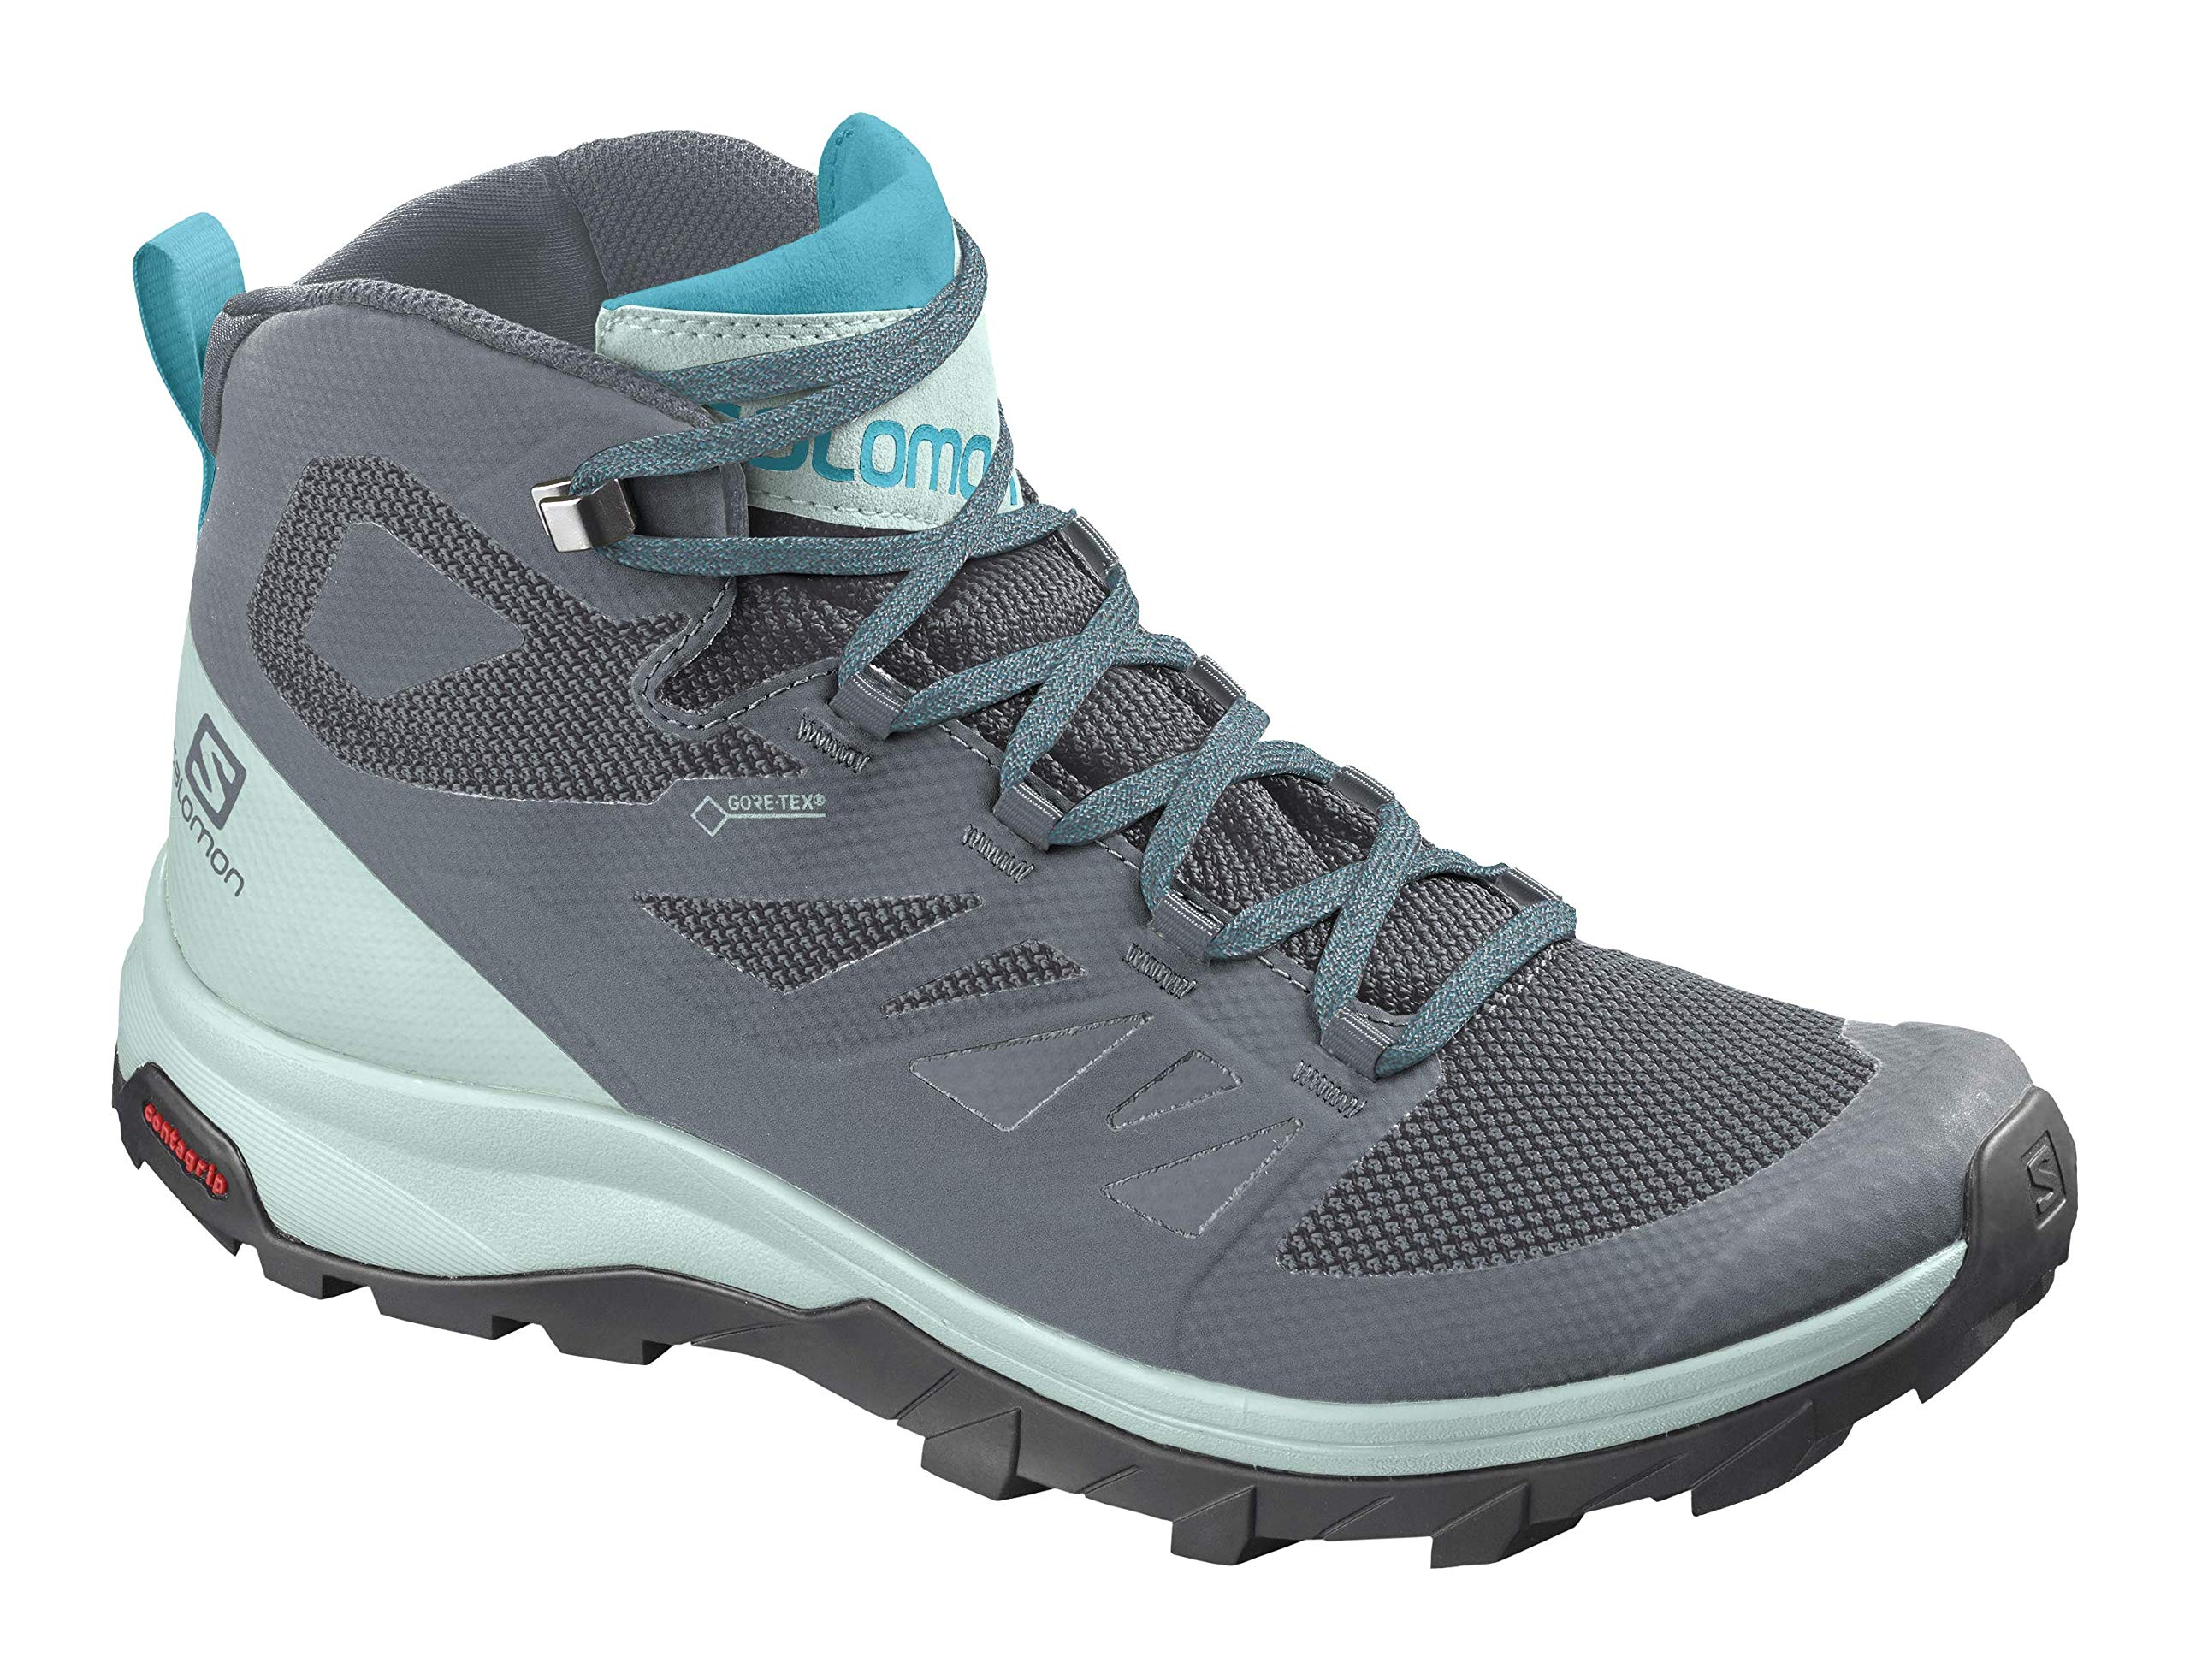 Salomon Women's OUTline Mid GTX W Hiking Boots, Stormy Weather/Icy Morning/Bluebird